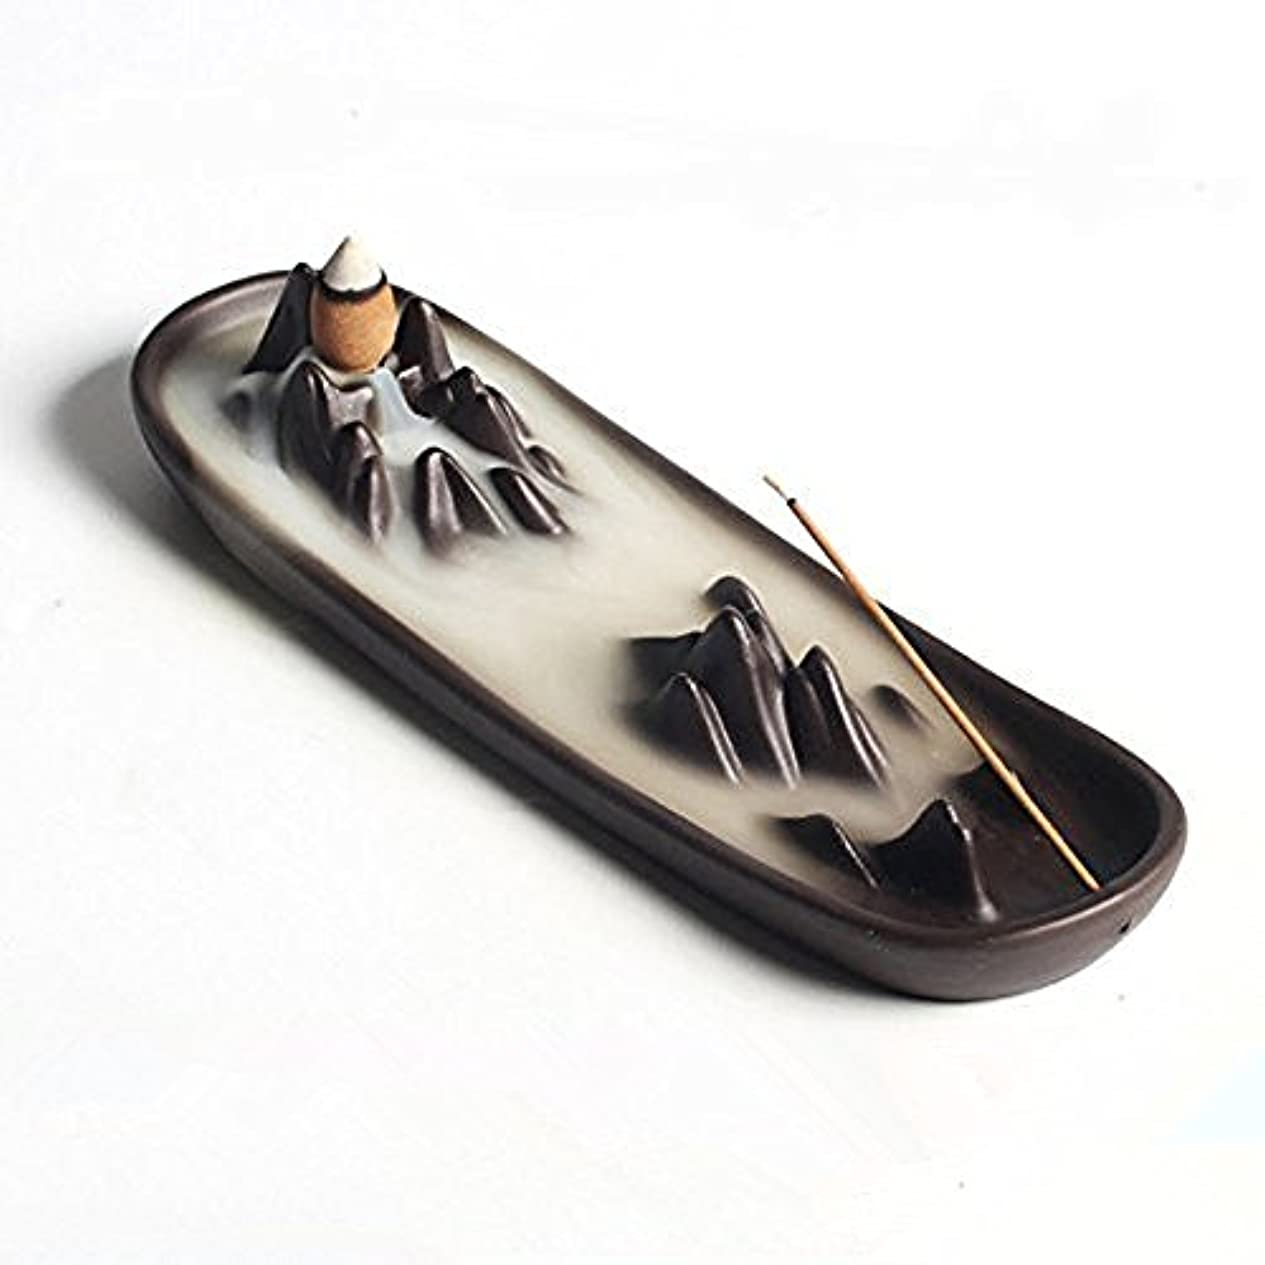 顔料平行ラジカルCeramic mountain peak Boat Style Multifunction Incense Burner Stick Backflow Incense Holder Clay Incense Ash Catcher...